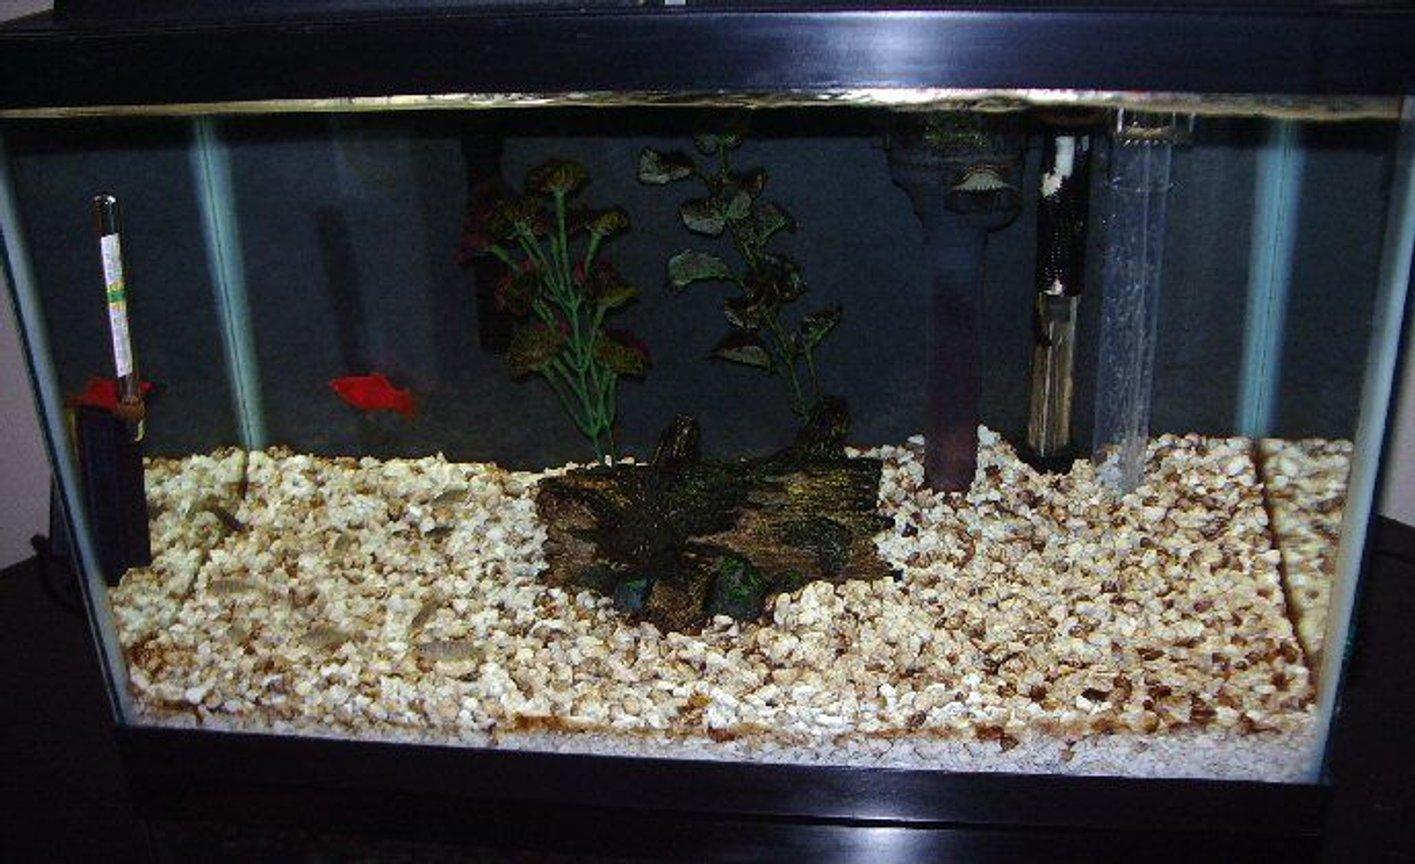 90 gallons freshwater fish tank (mostly fish and non-living decorations) - 10 gallon